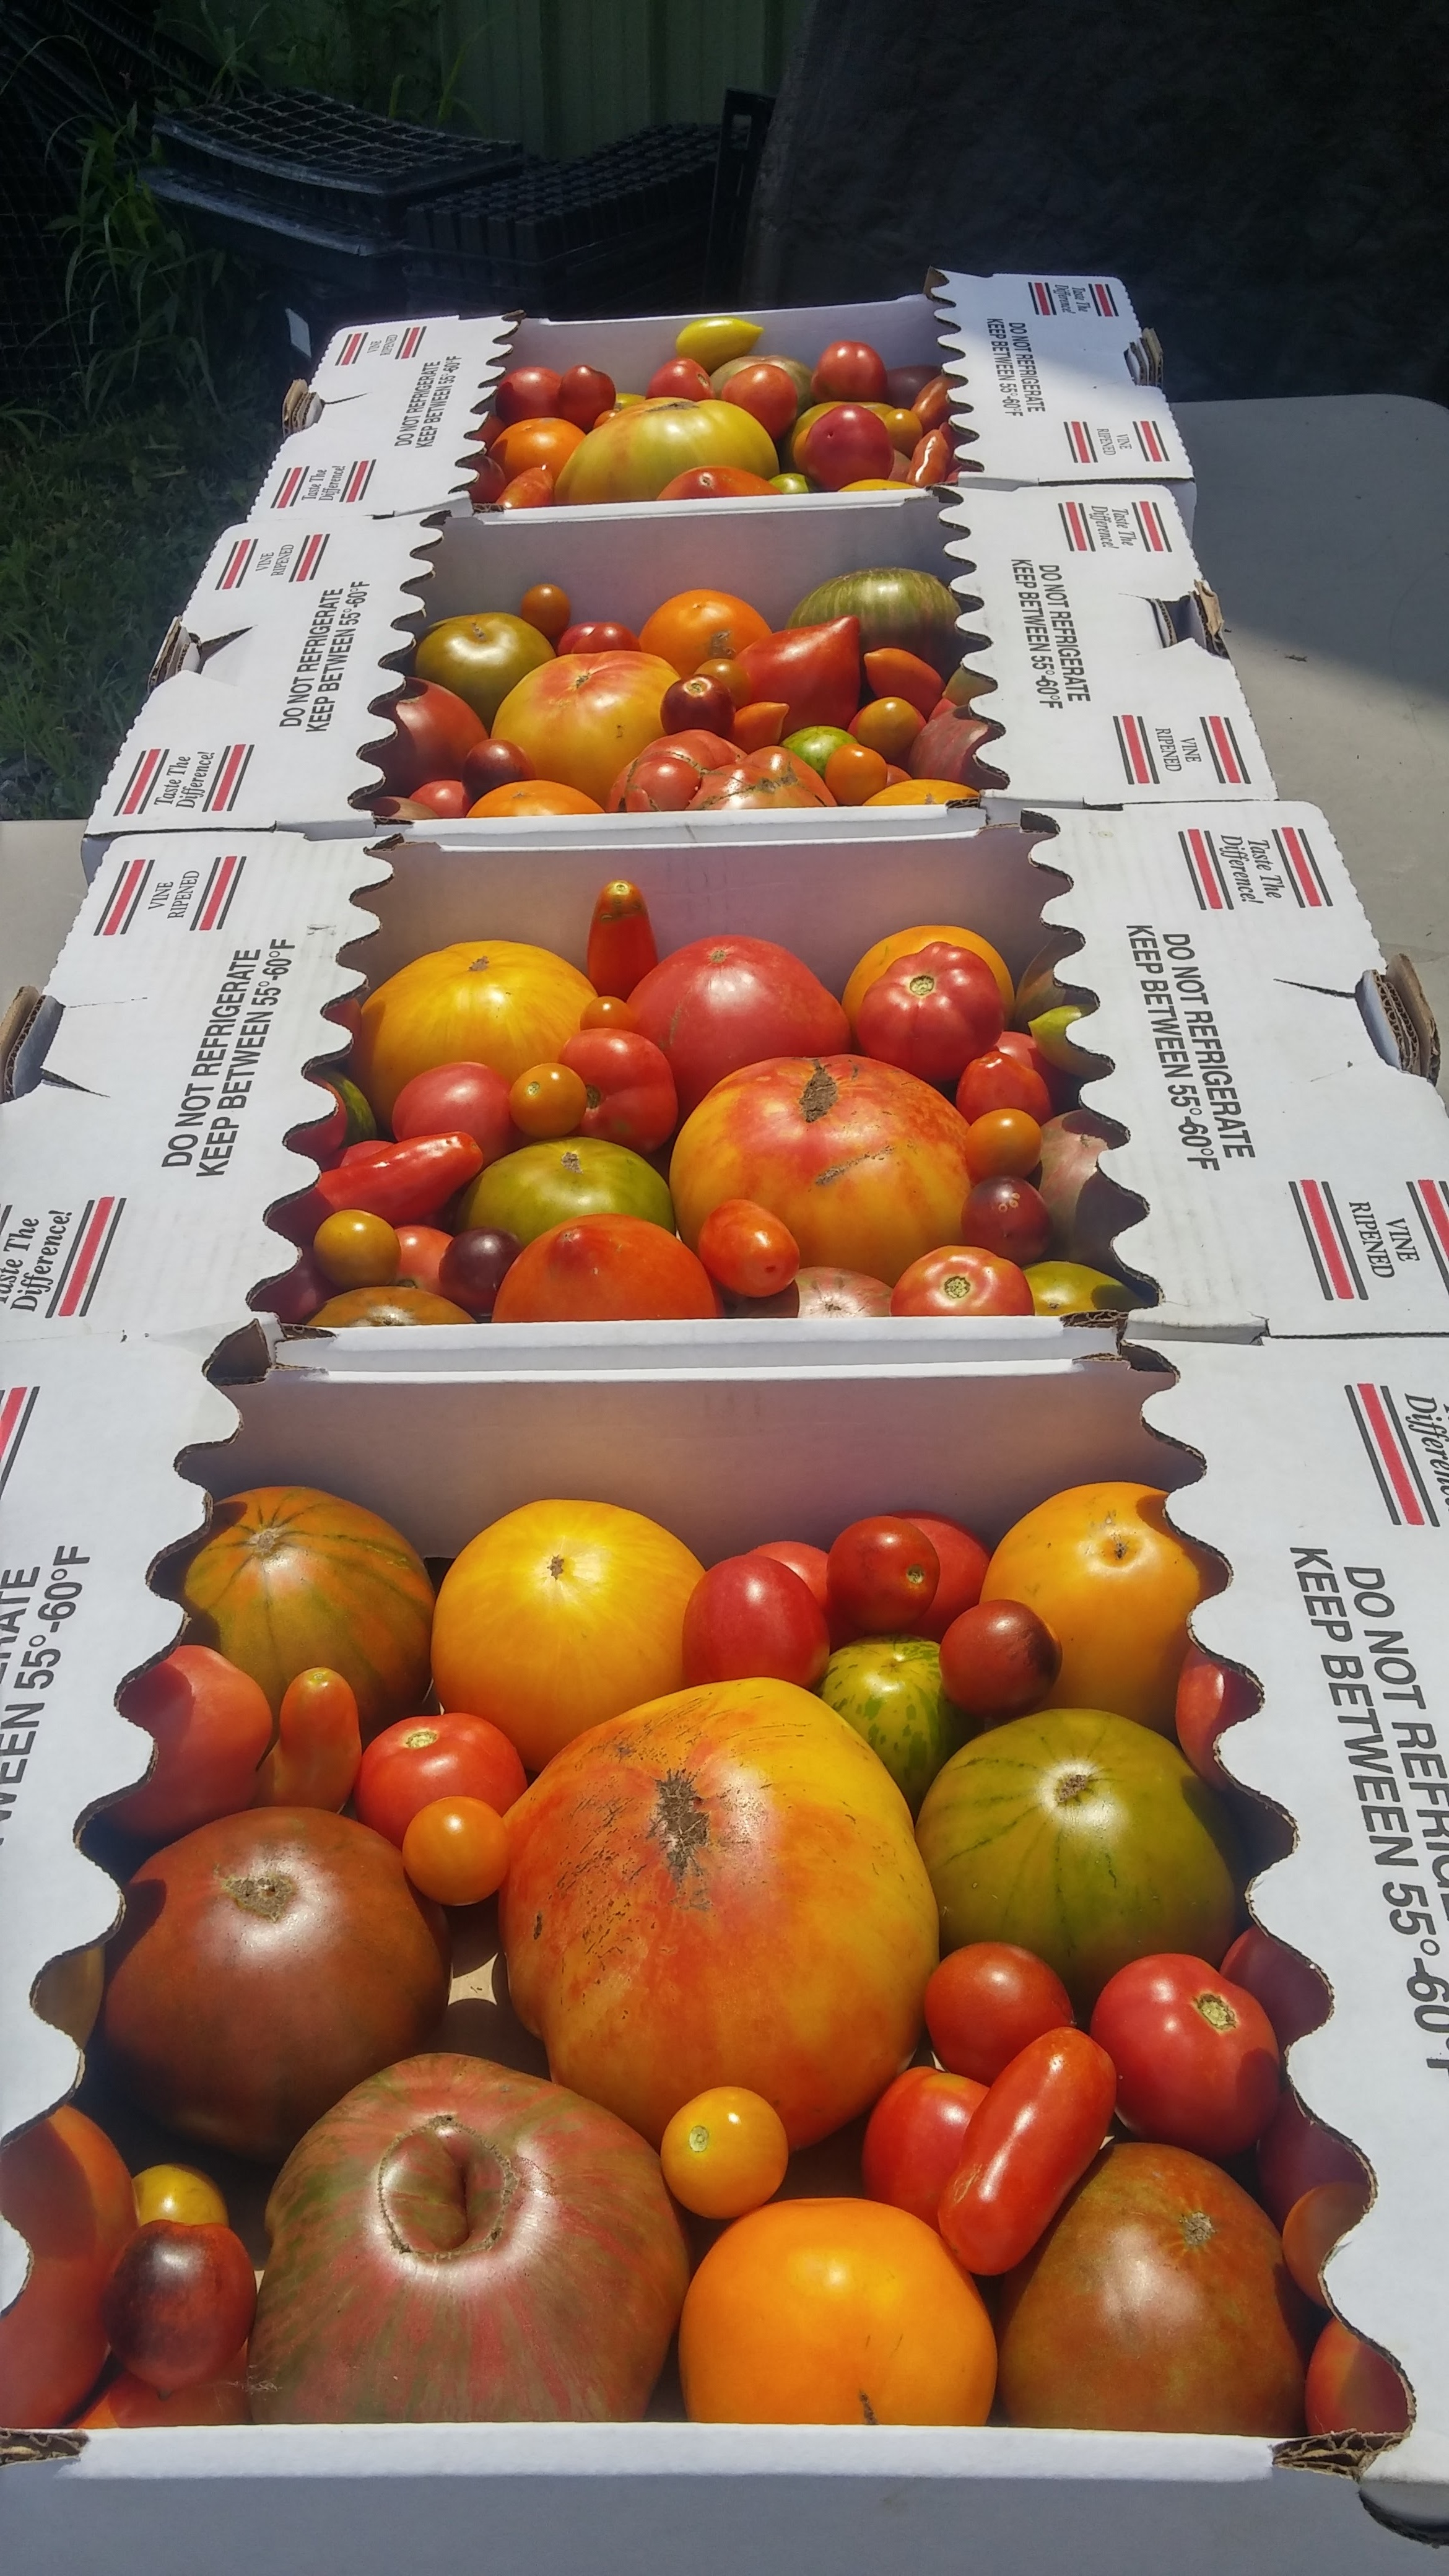 Heirloom tomatoes on their way to restaurants.